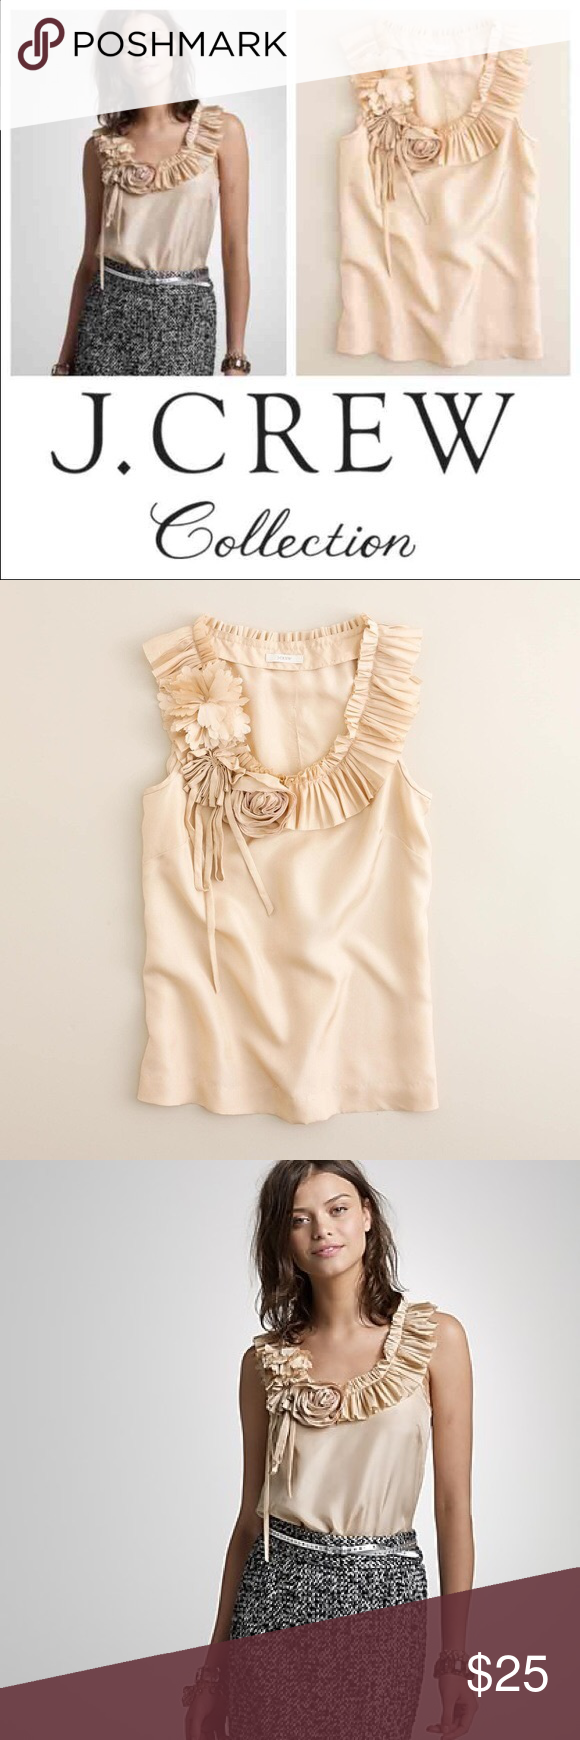 6129e187f006 J.CREW SILK PLEATED POSY TOP PRODUCT DETAILS New with tags, never worn.